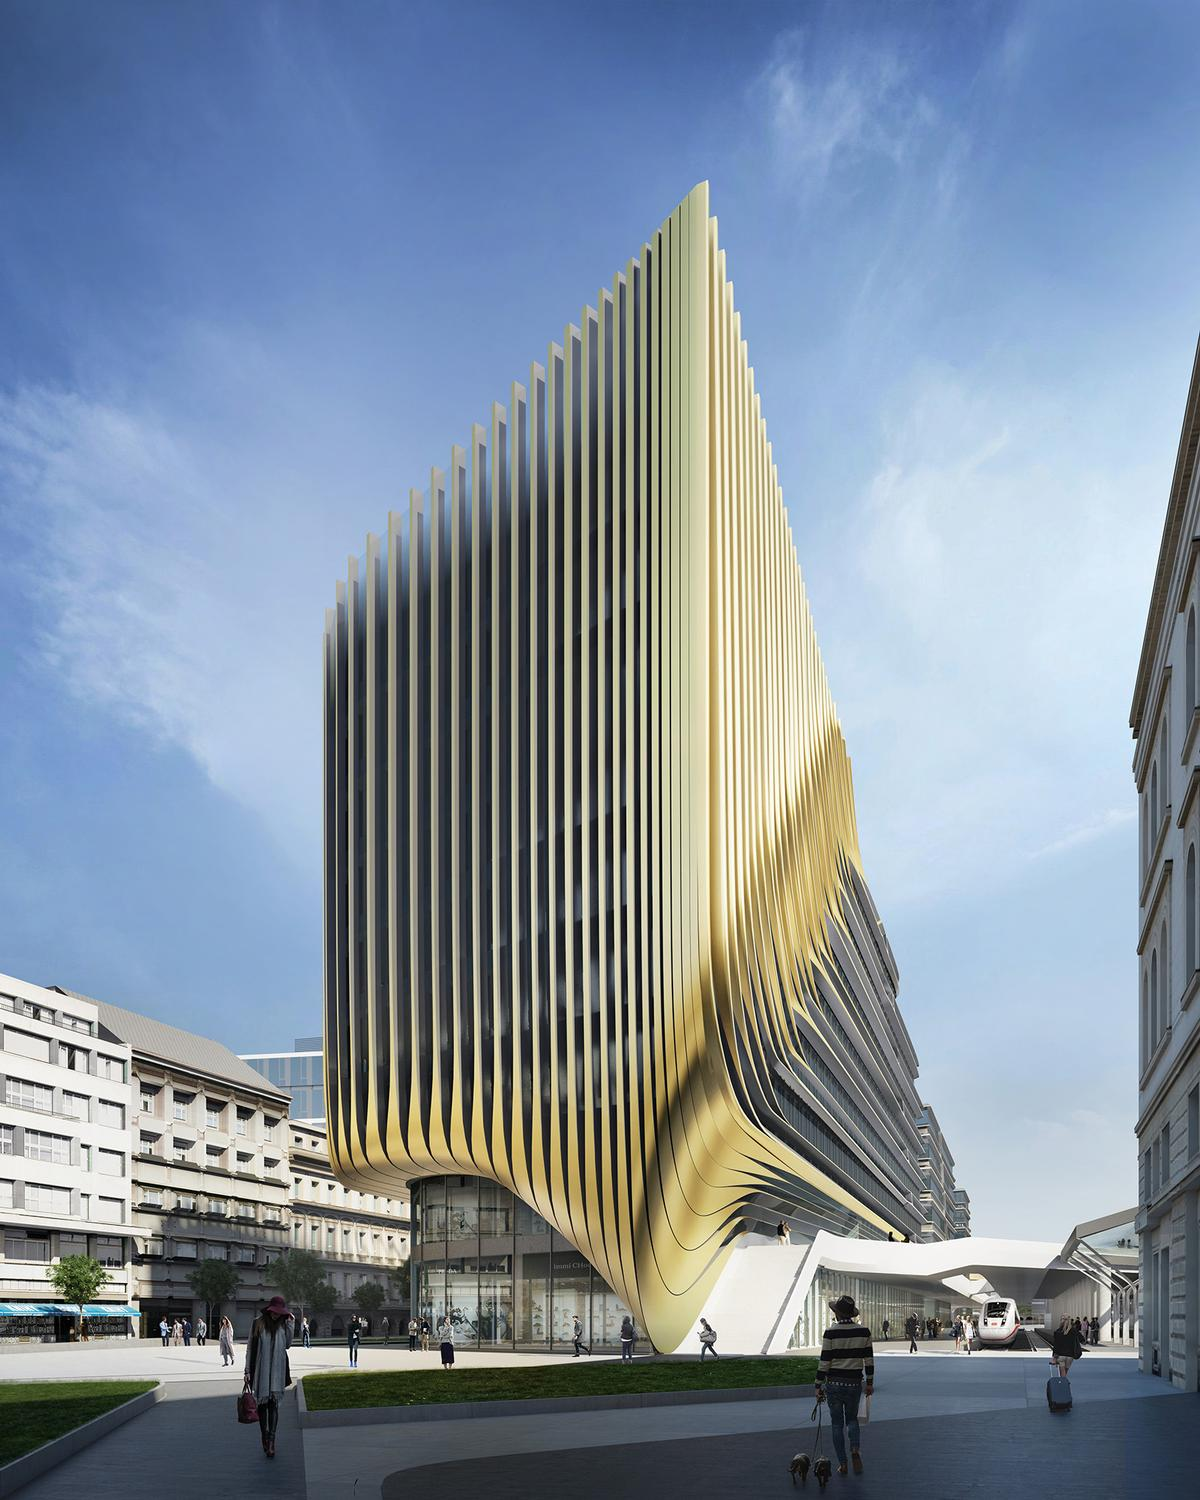 The striking new exterior designed for Masaryk